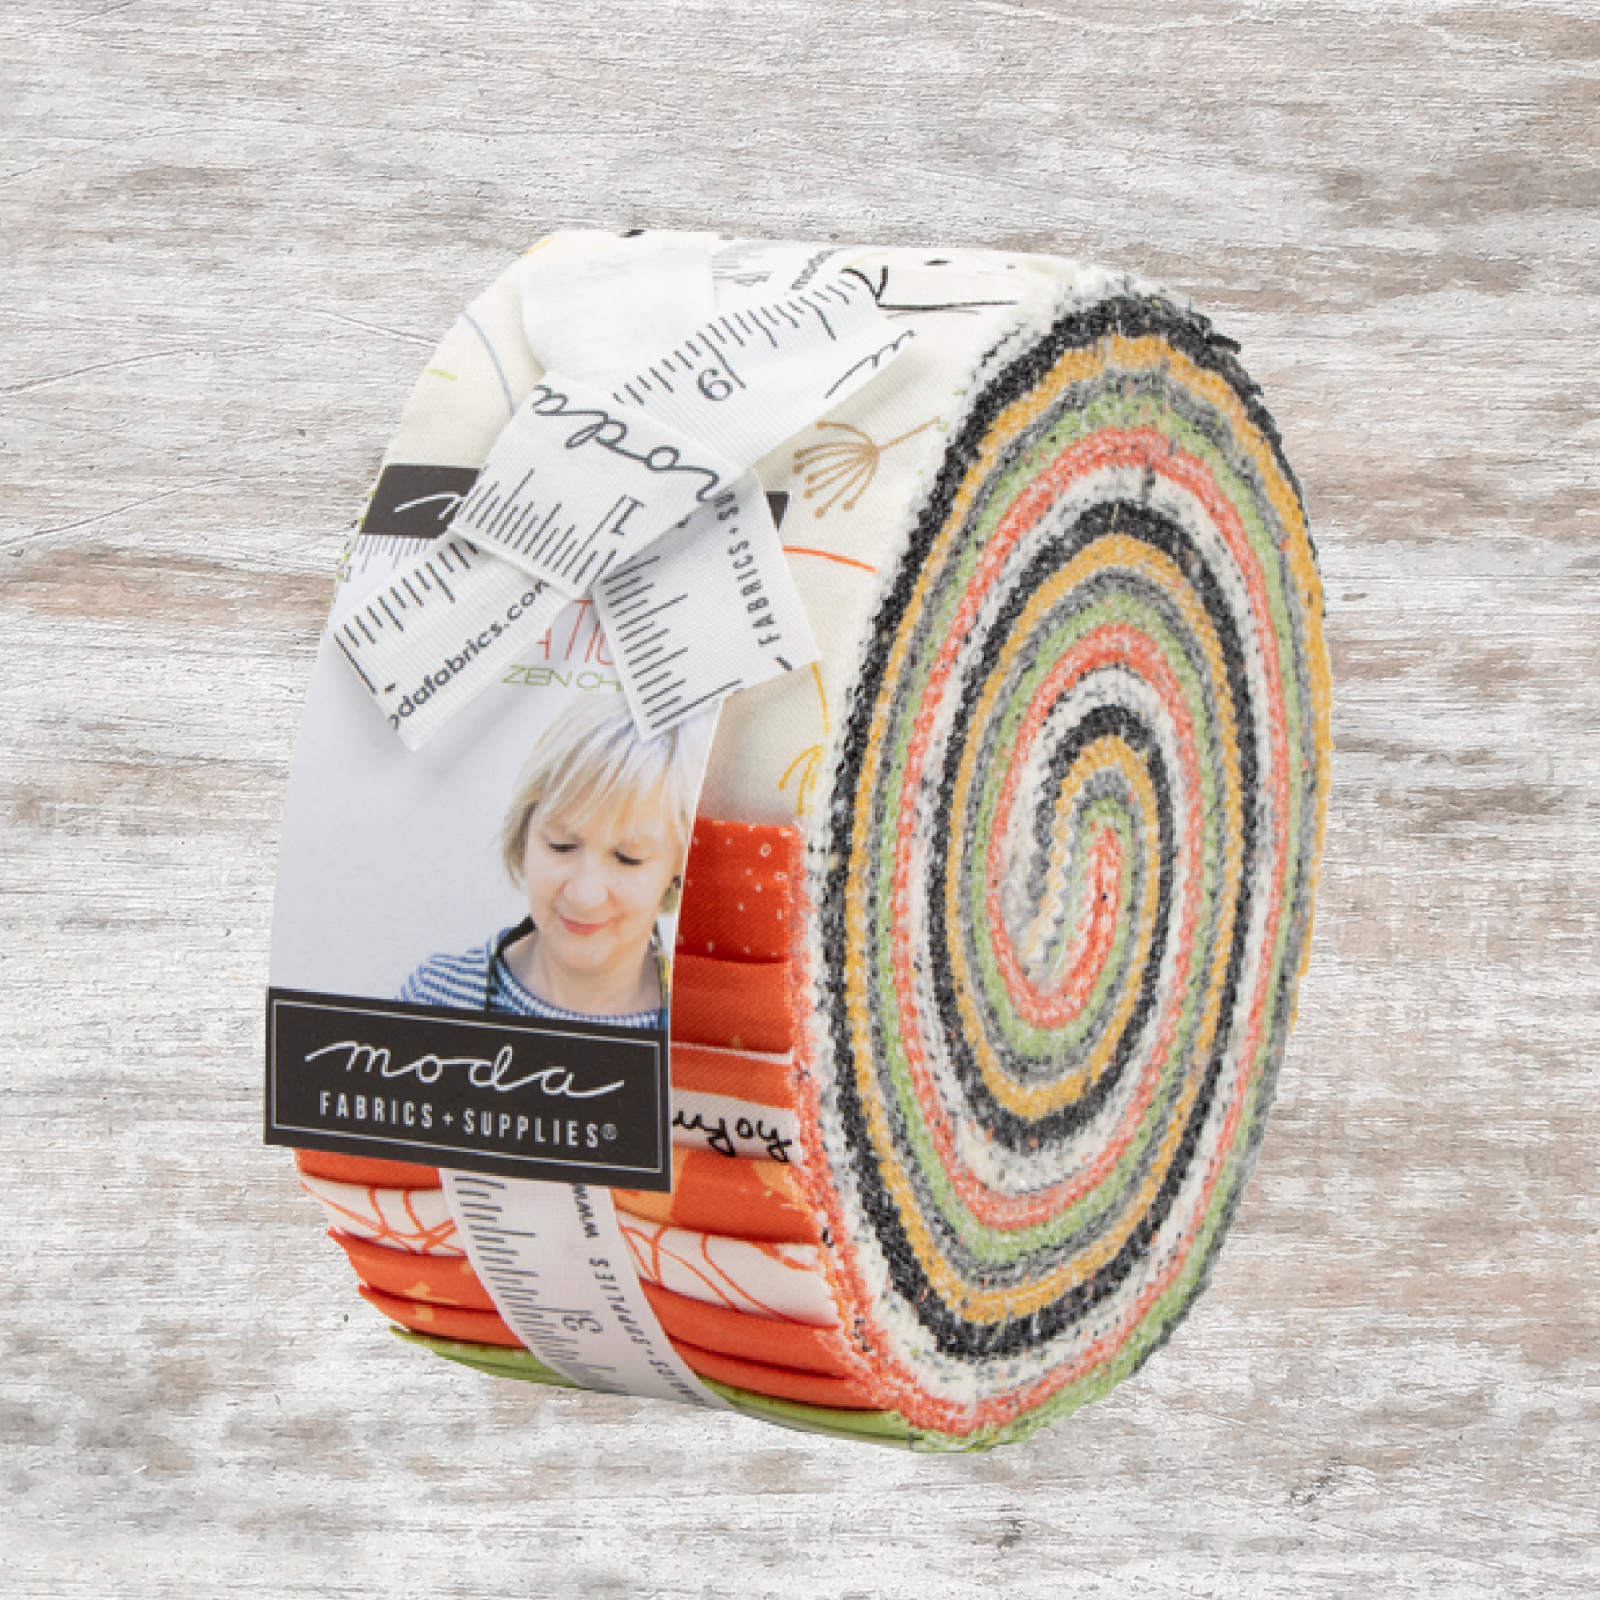 Quotation Jelly Roll (40 pcs)